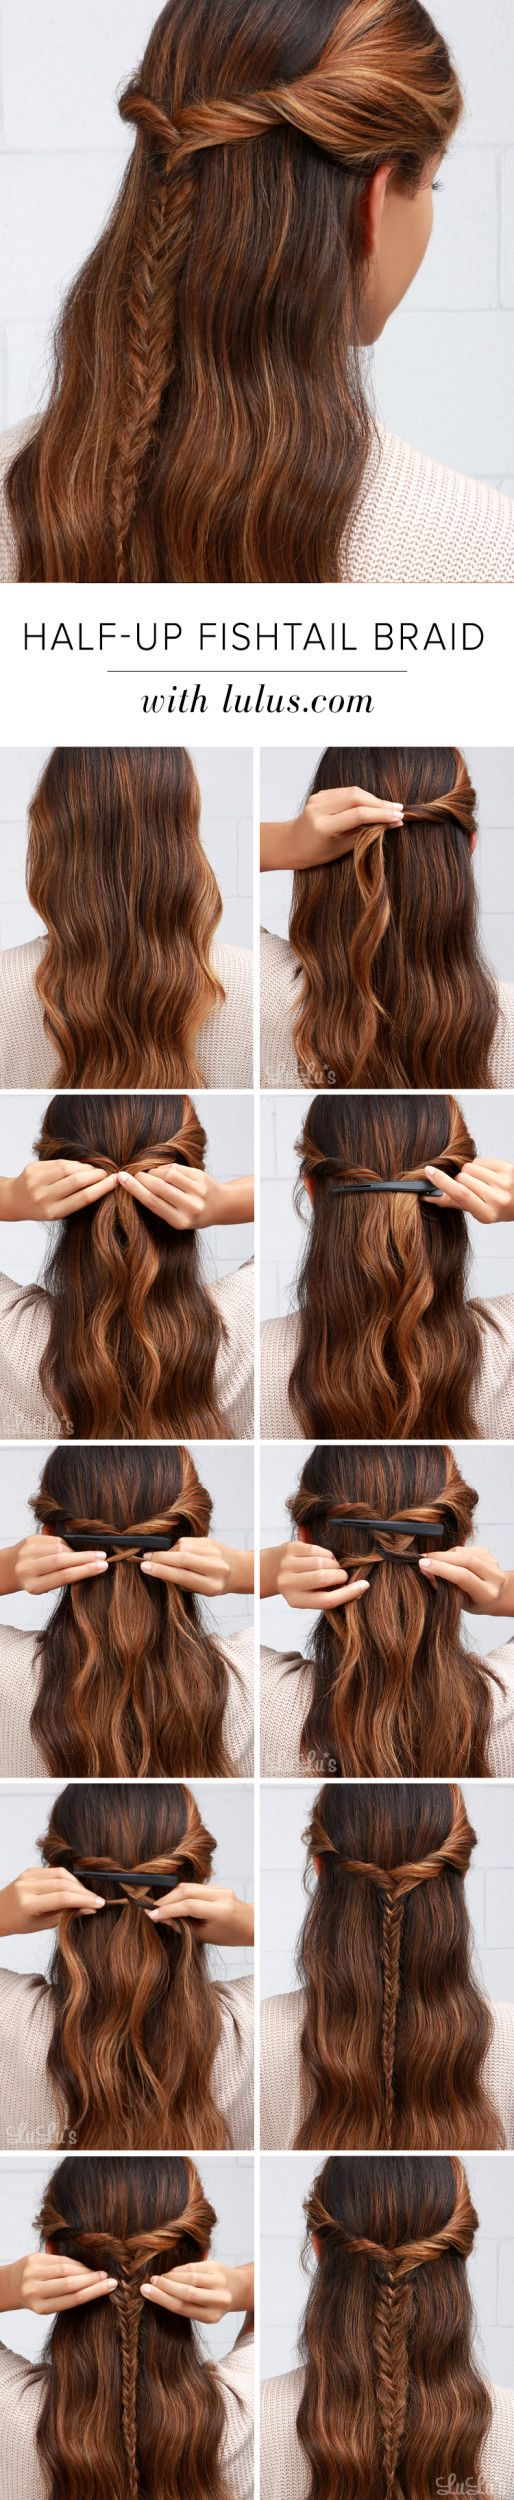 quick and easy ways to style your hair in less than minutes